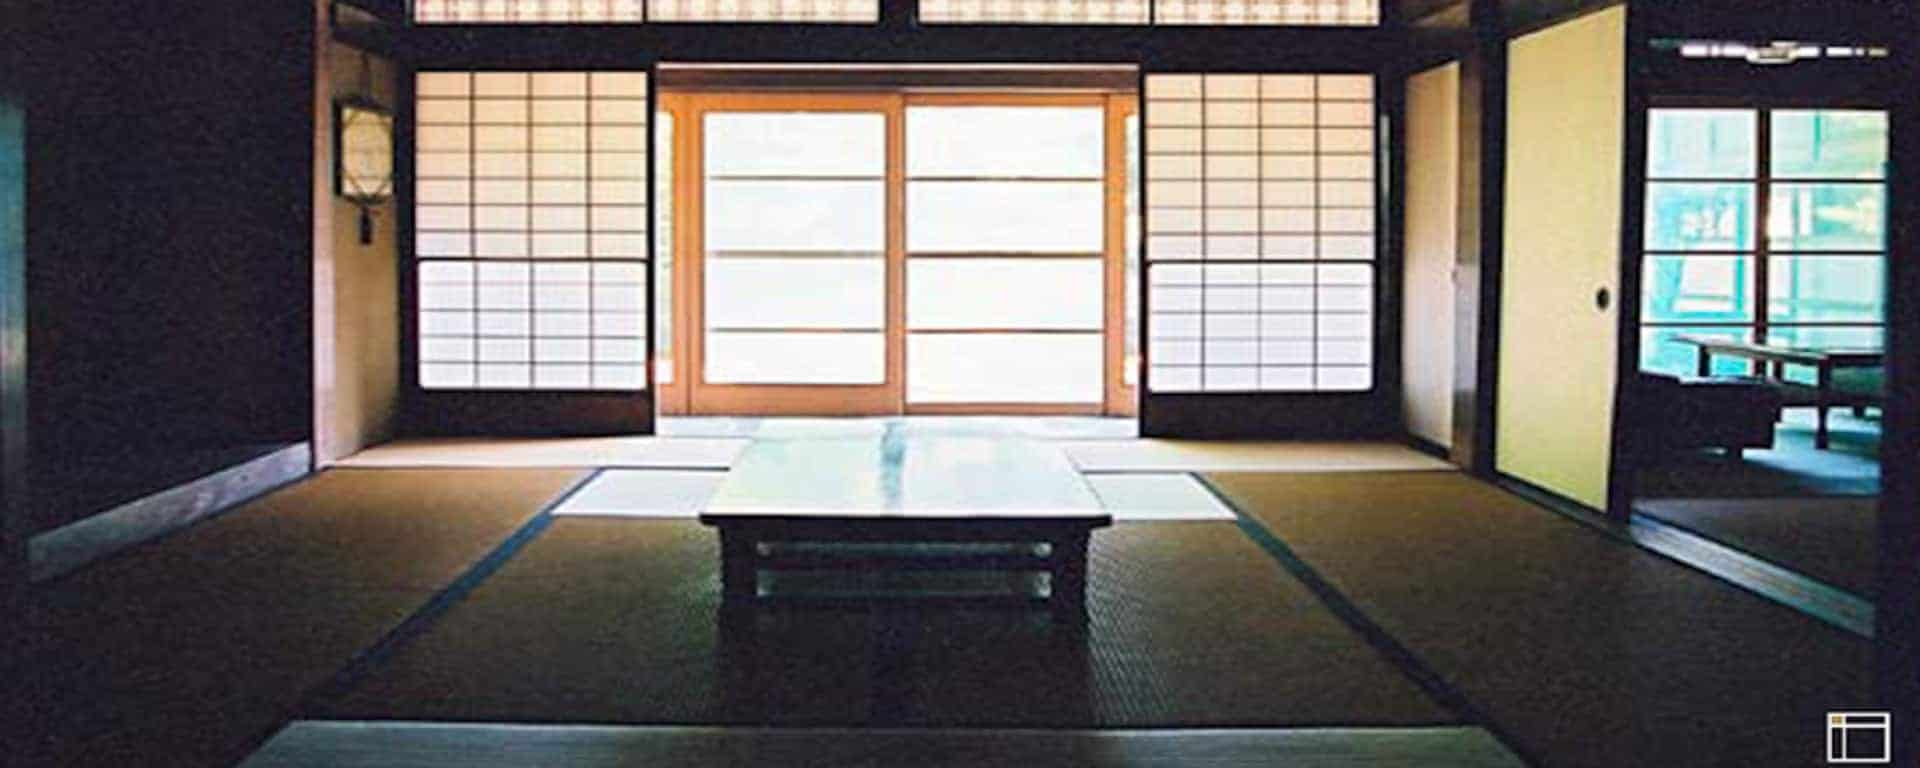 Japanese Zen Kyoto Interior Design Garden Style & Japanese Furniture Sale by INDOOR Architecture London UK